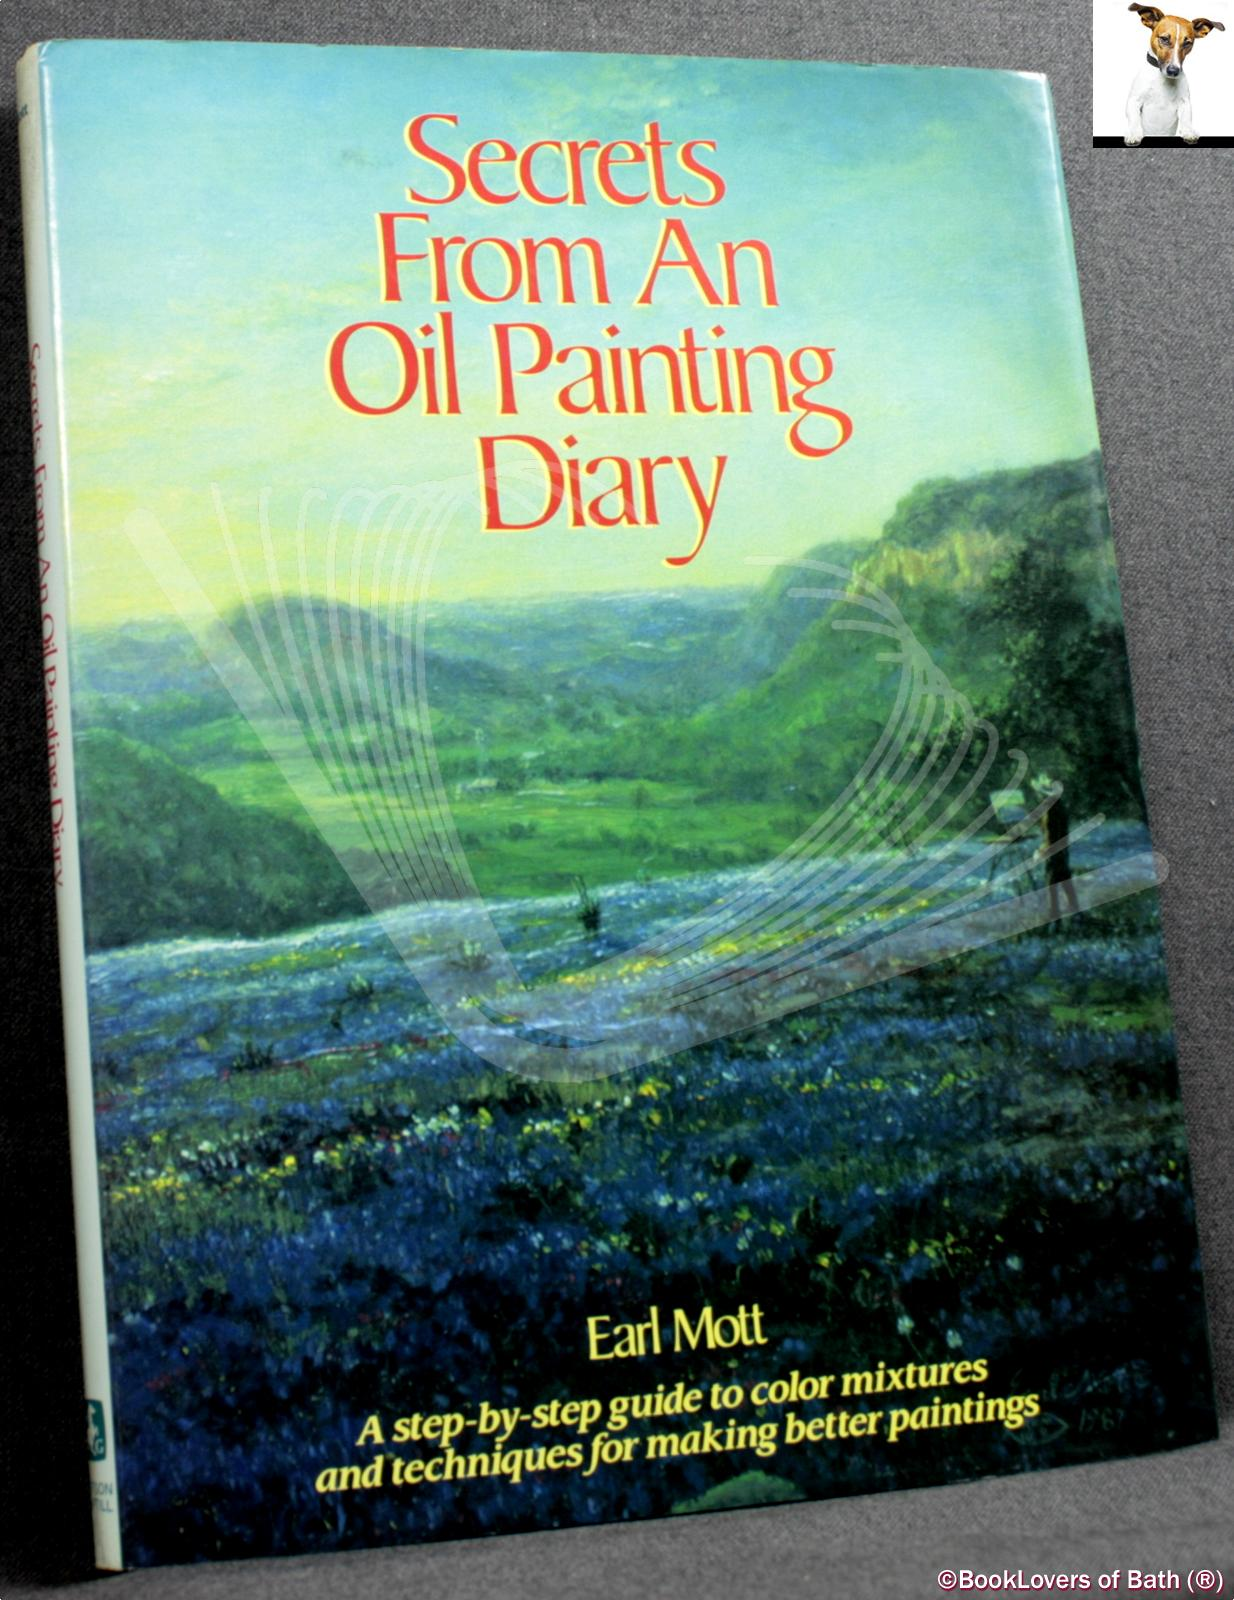 Secrets from An Oil Painting Diary - Earl Mott